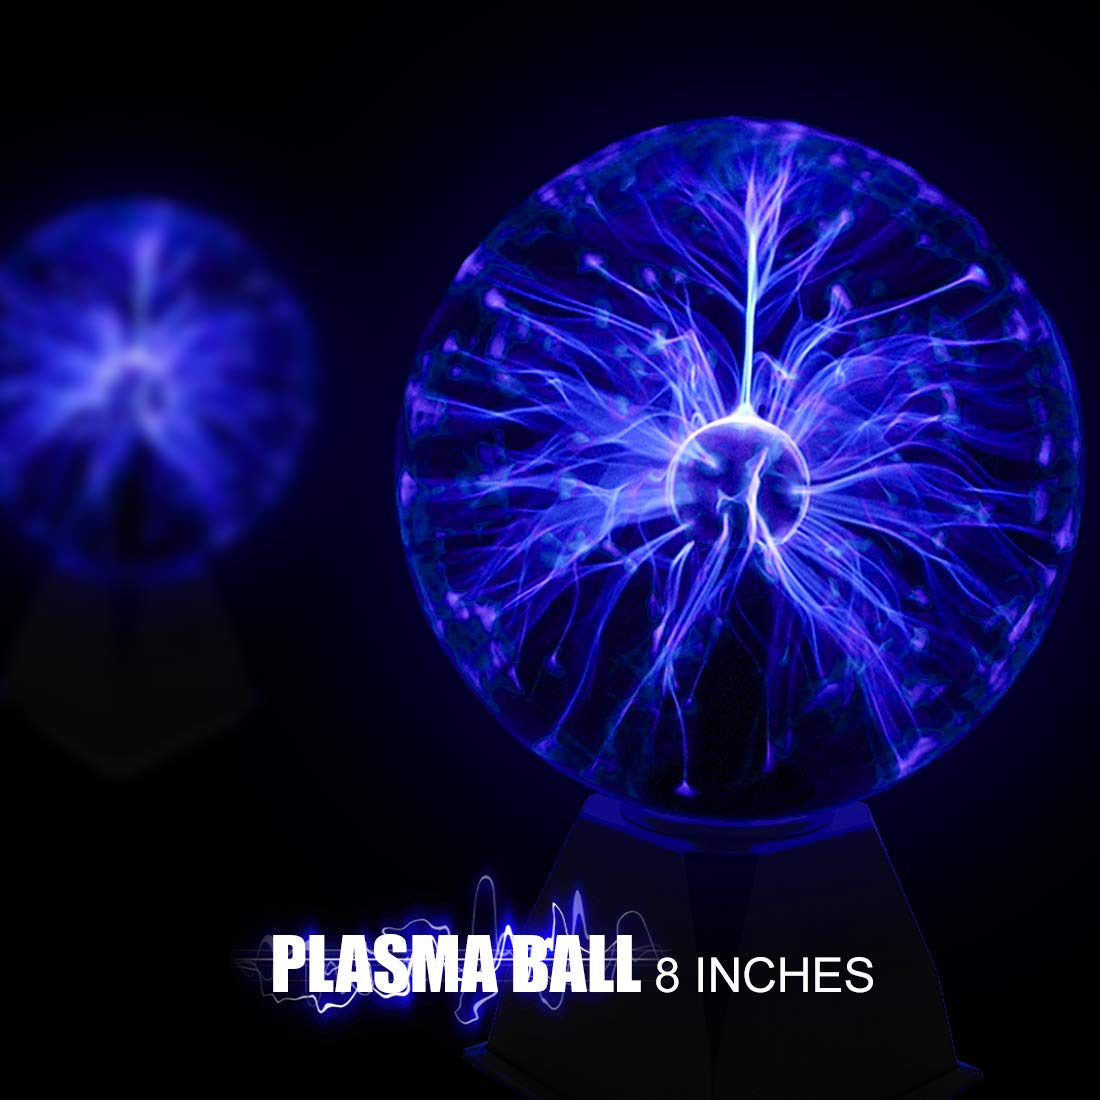 Tradeopia Corp. Glass Plasma Ball Touch Sensitive Decoration Lightning - 8'' Blue